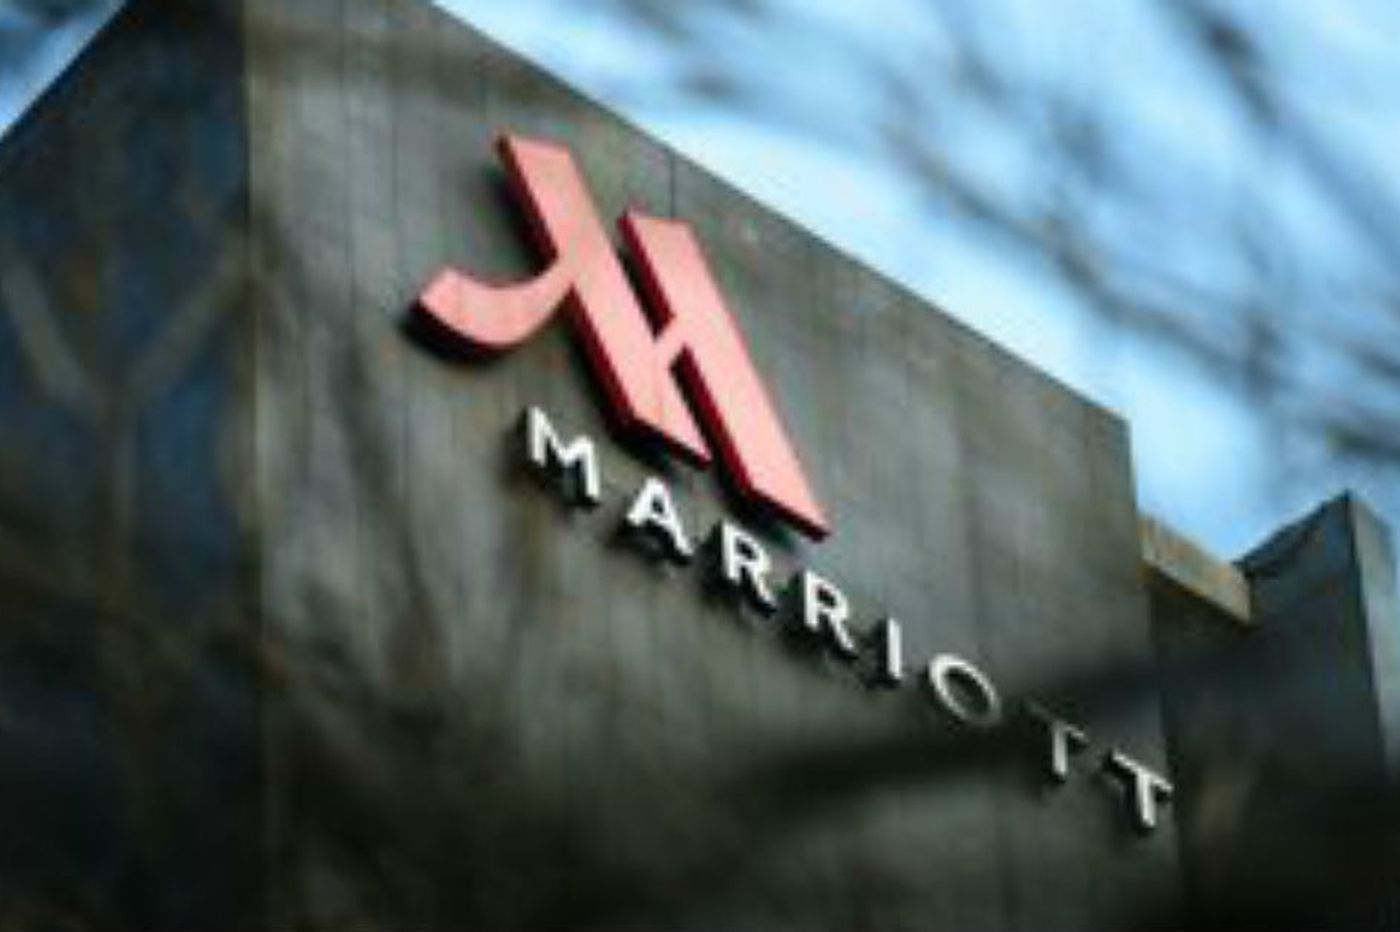 Senators call for data breach penalties, tougher privacy laws after Marriott hack